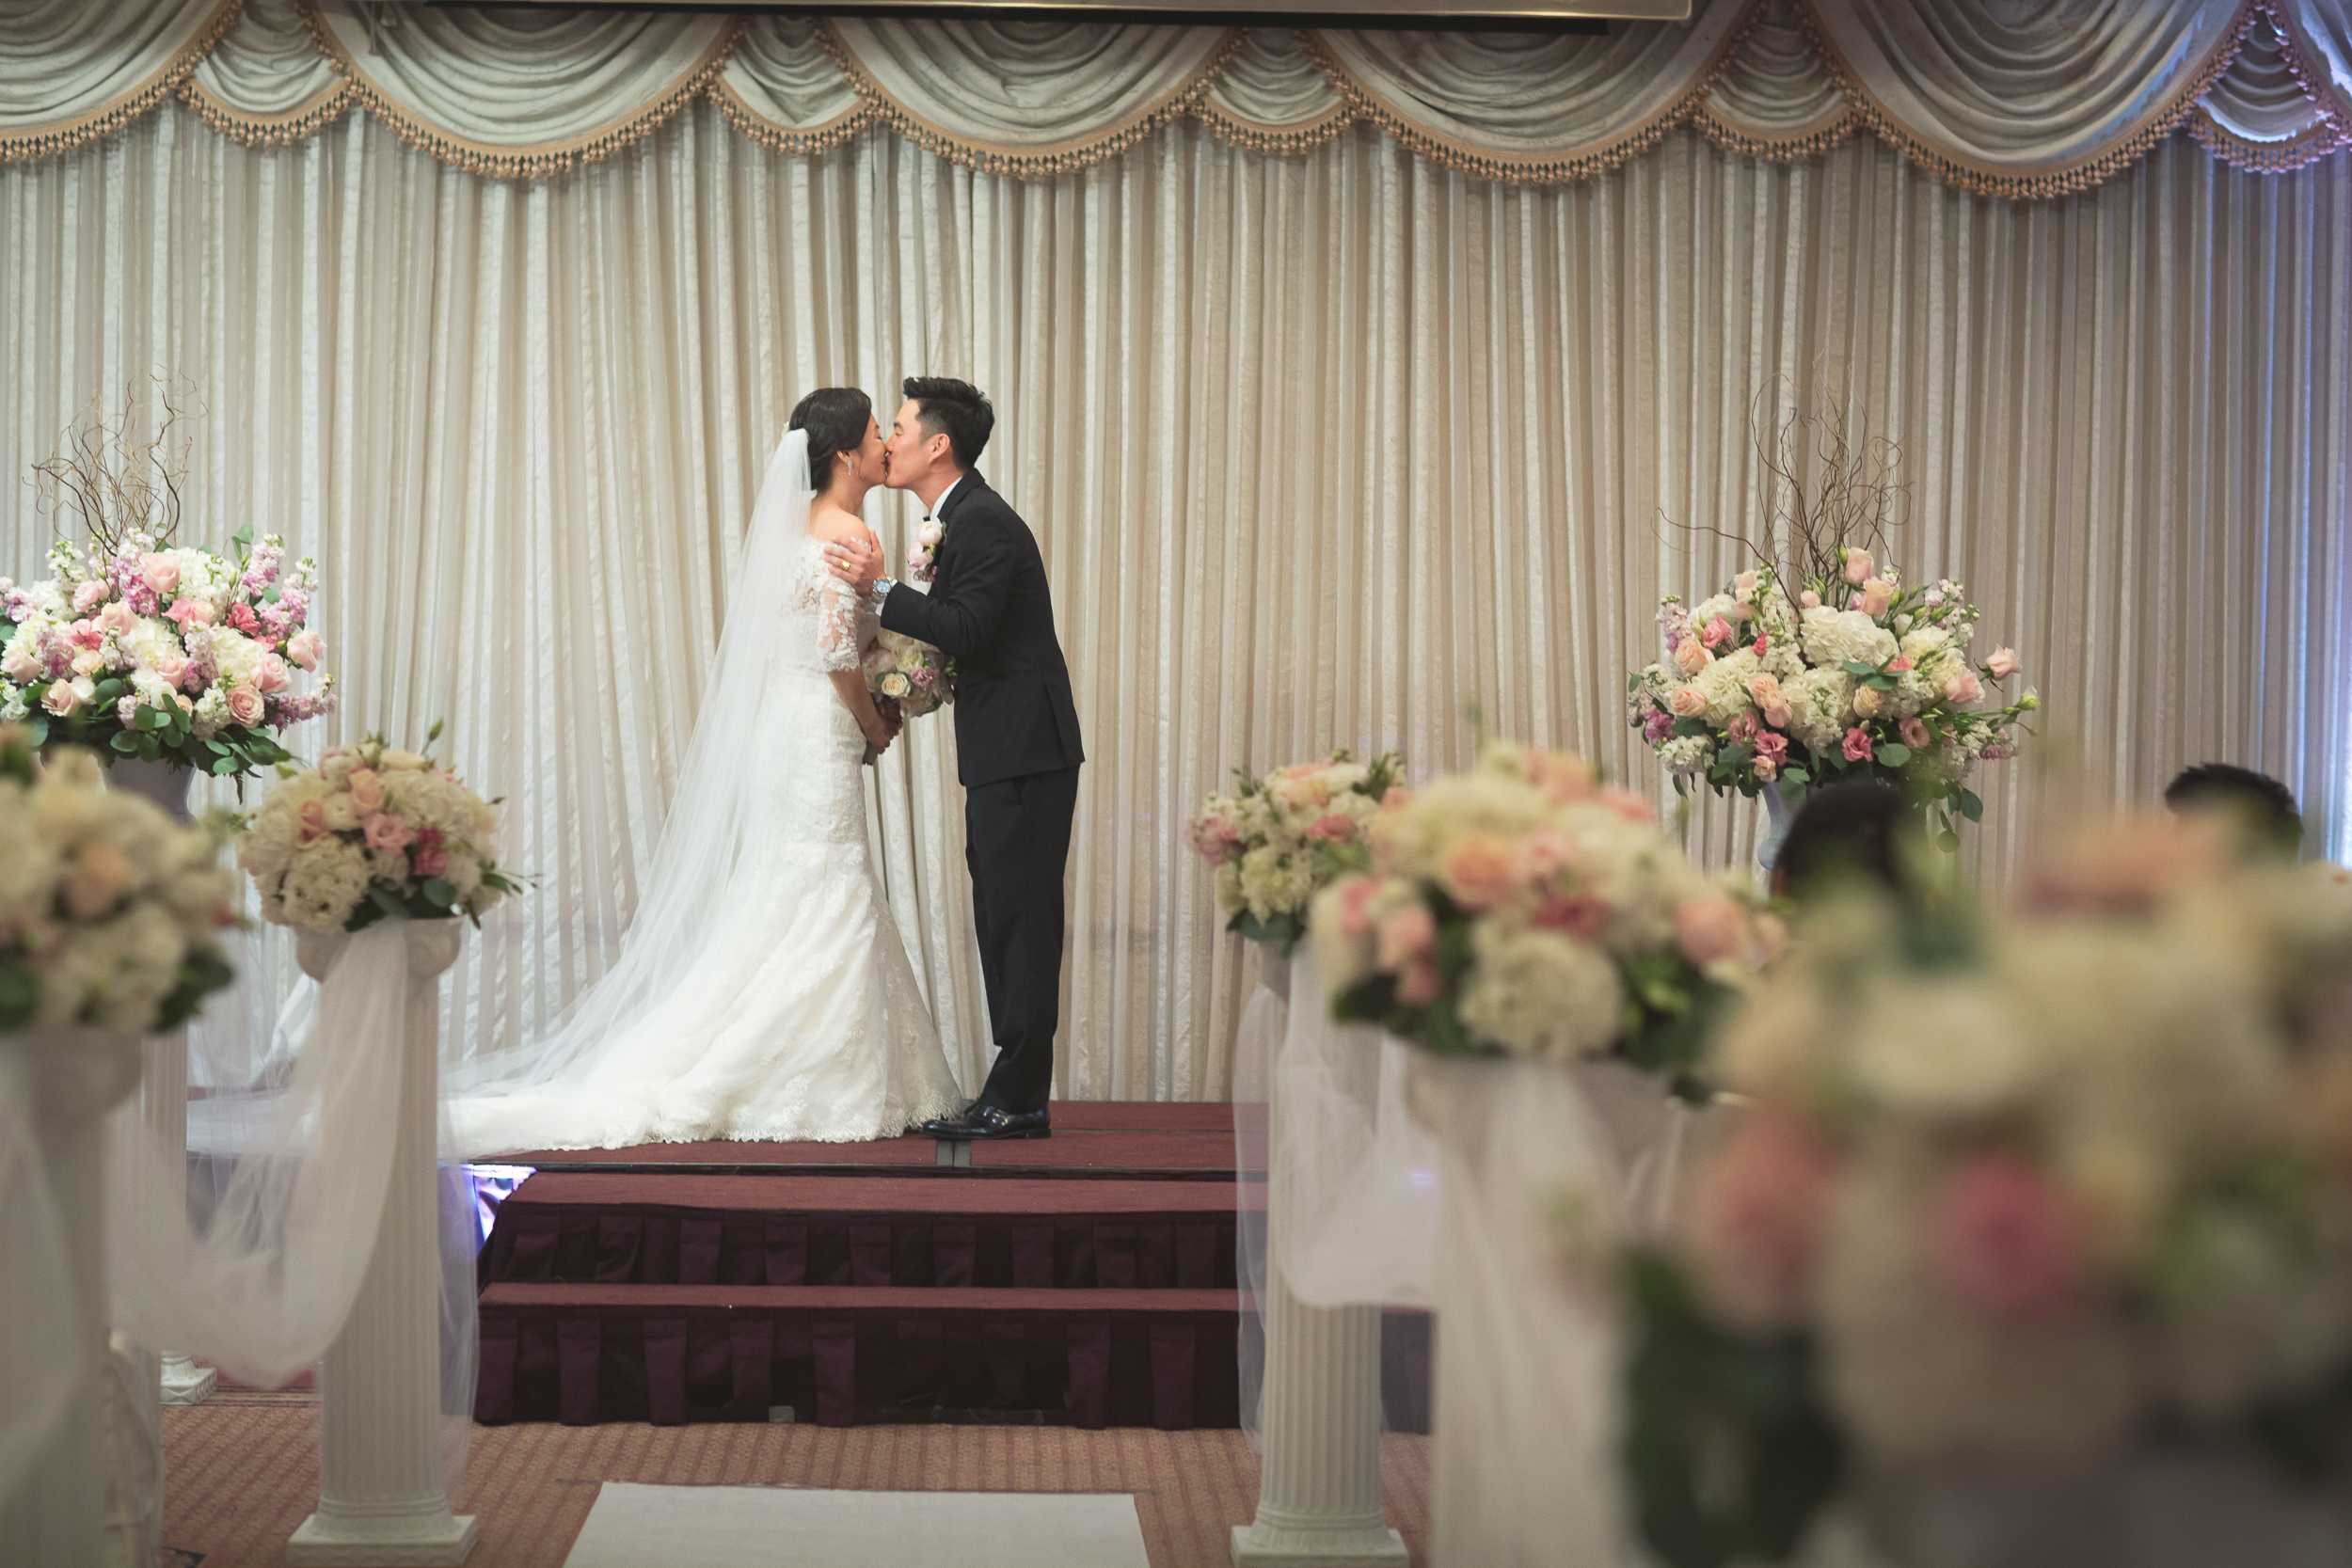 61_Ji Young Choi & Kyungmin Song Wedding